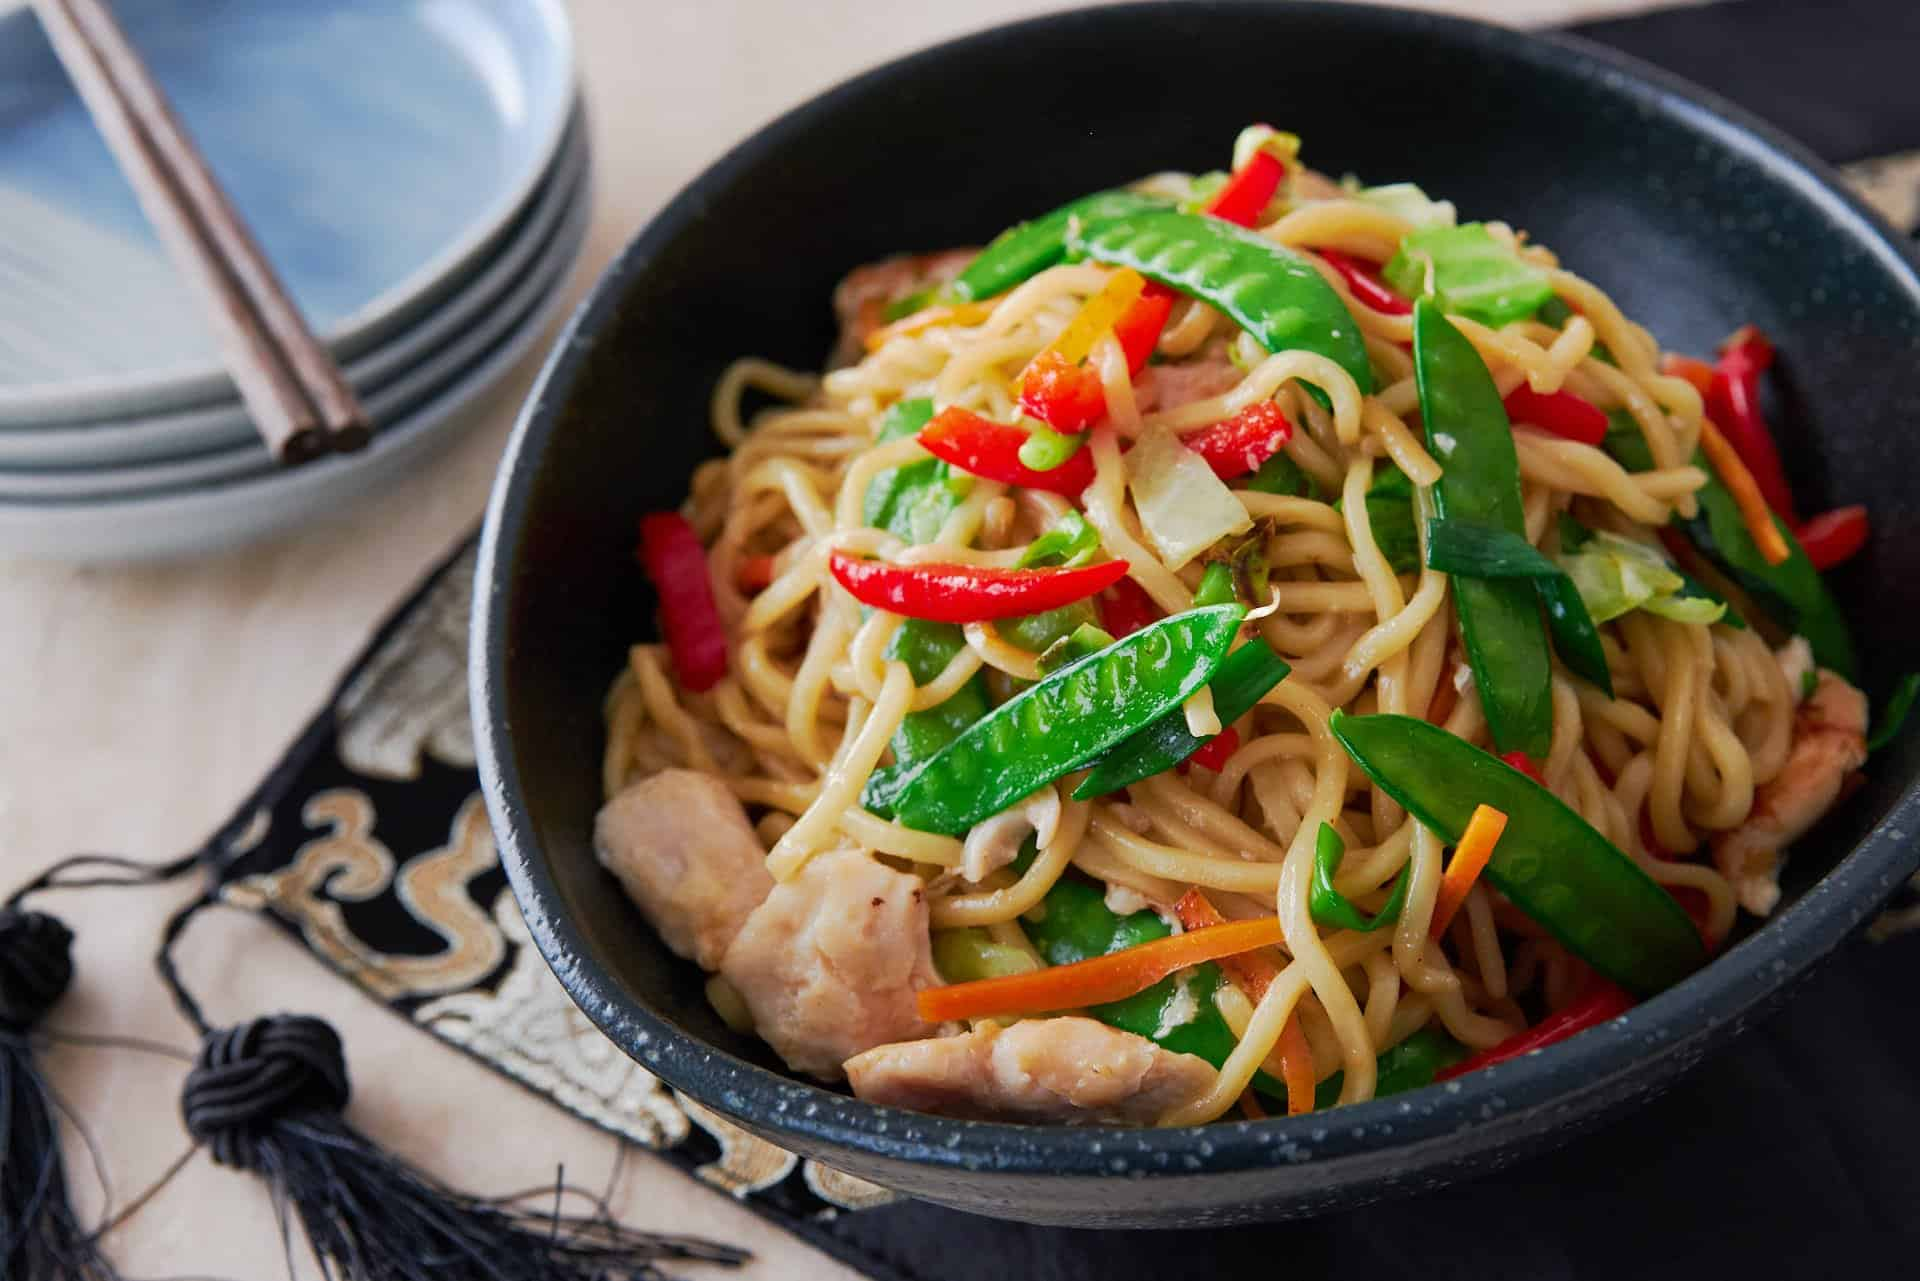 With a medley of fresh crisp veggies and juicy flavorful chicken, stir-fried with a tangle of savory noodles, this Chicken Chow Mein recipe is simply delicious.